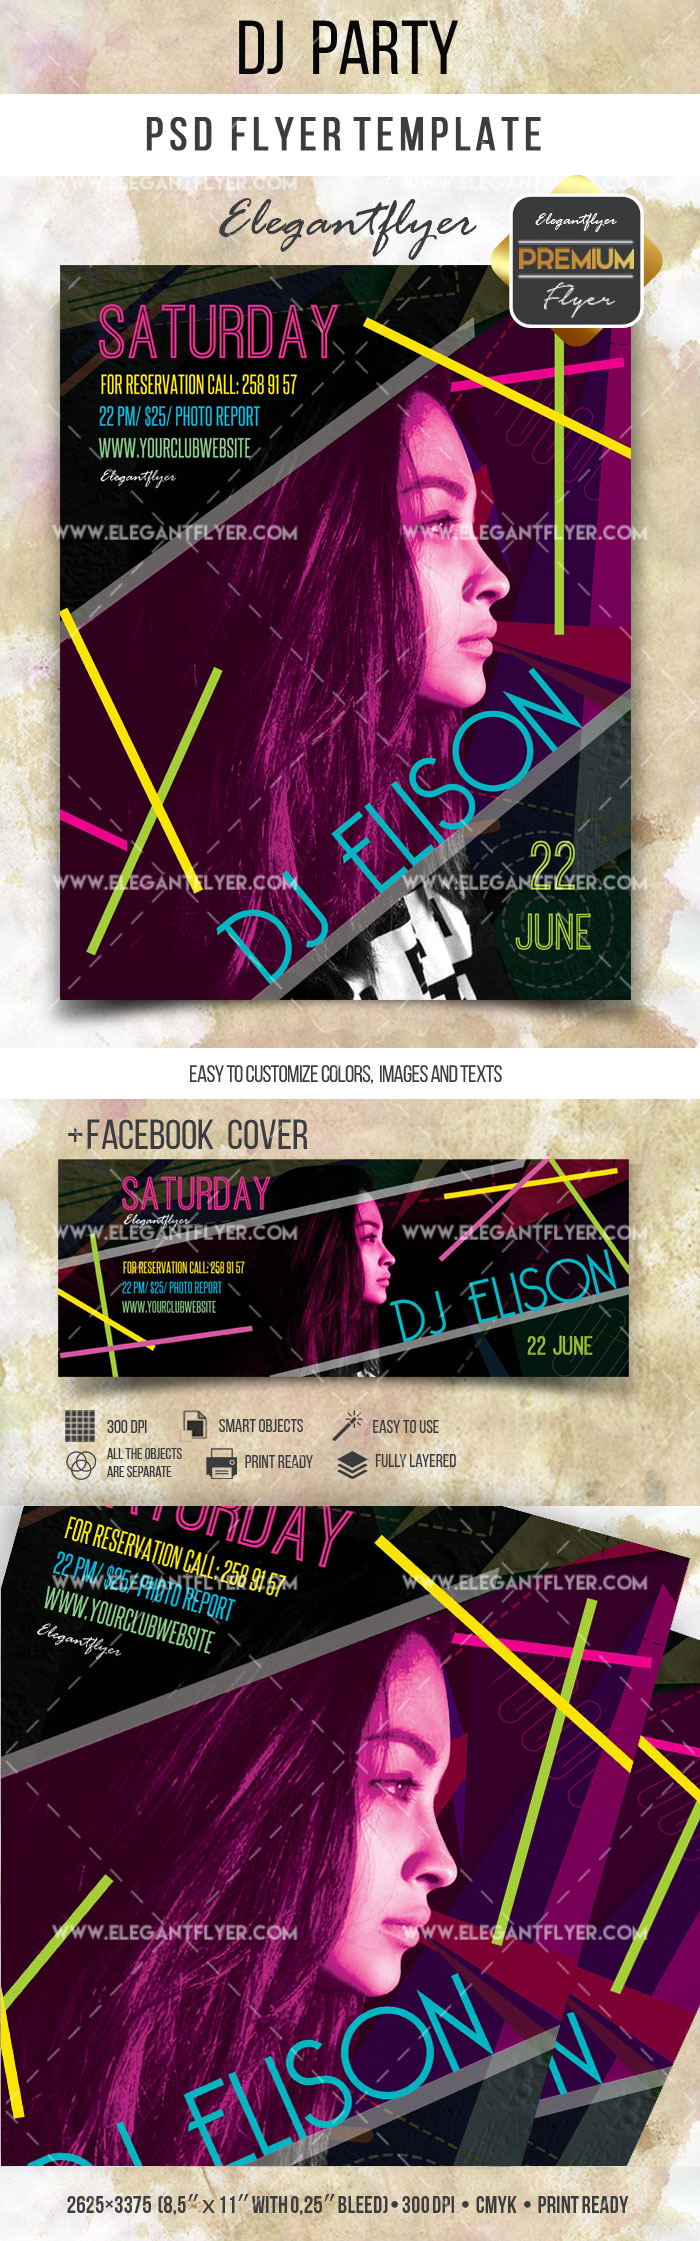 Party Favor Dj PSD Template